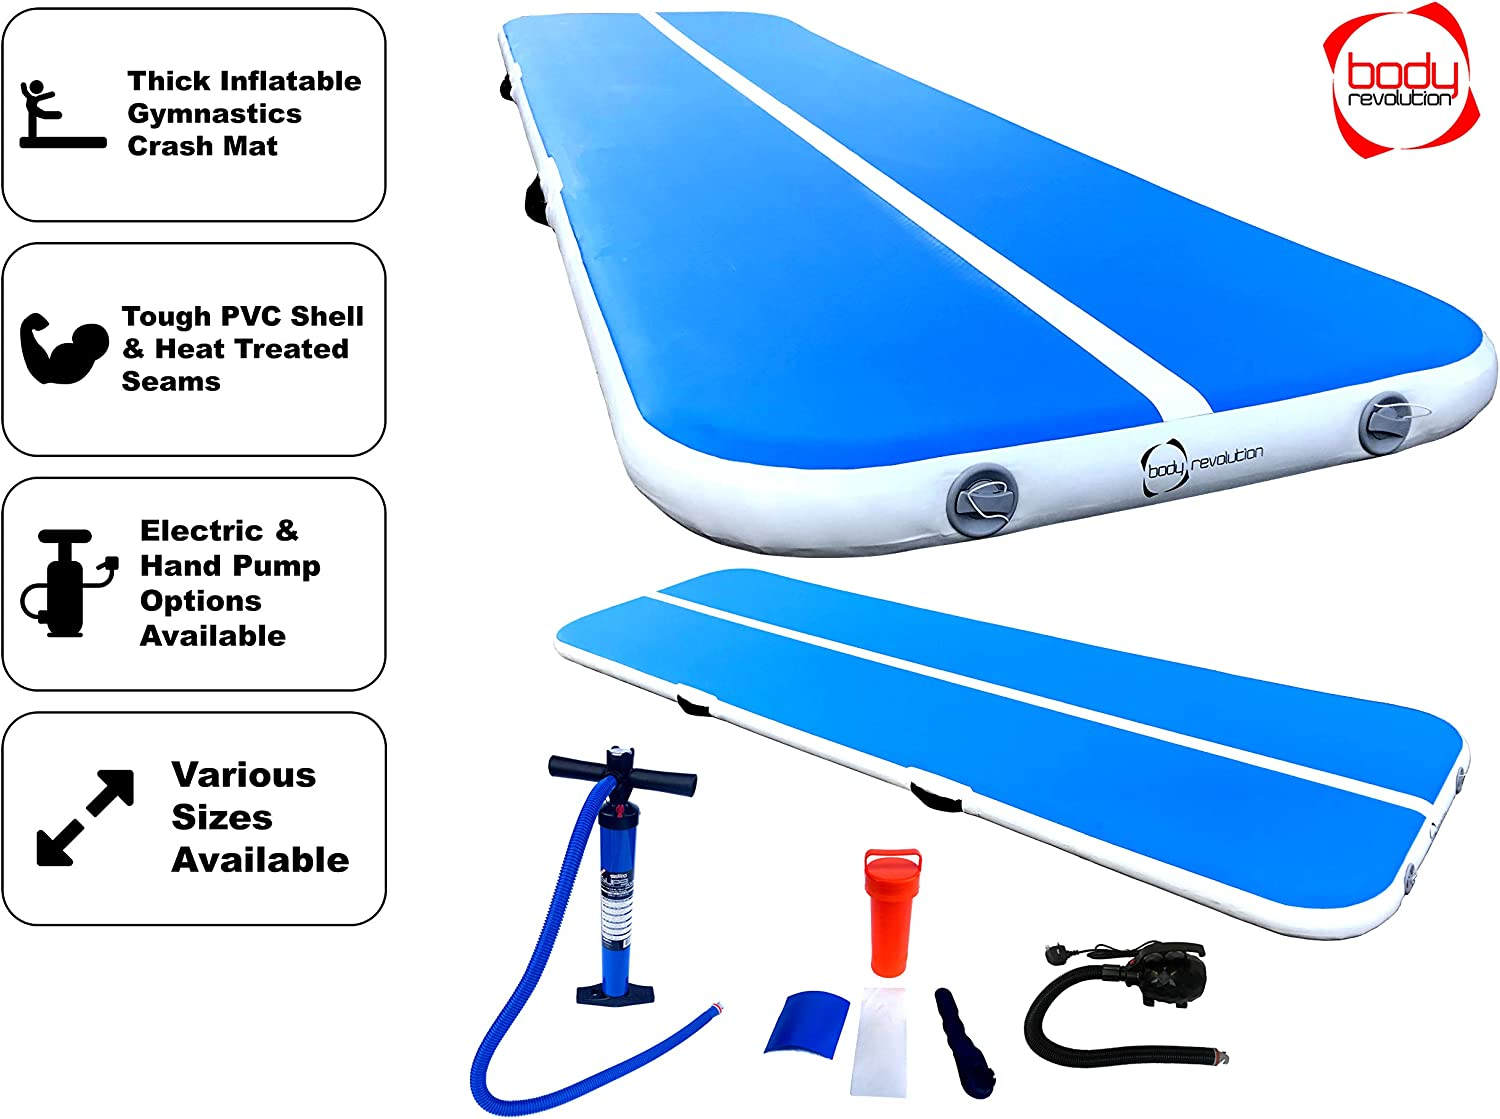 Pump Included Body Revolution Airtrack Inflatable Gymnastics Air Track and Tumble Crash Mats